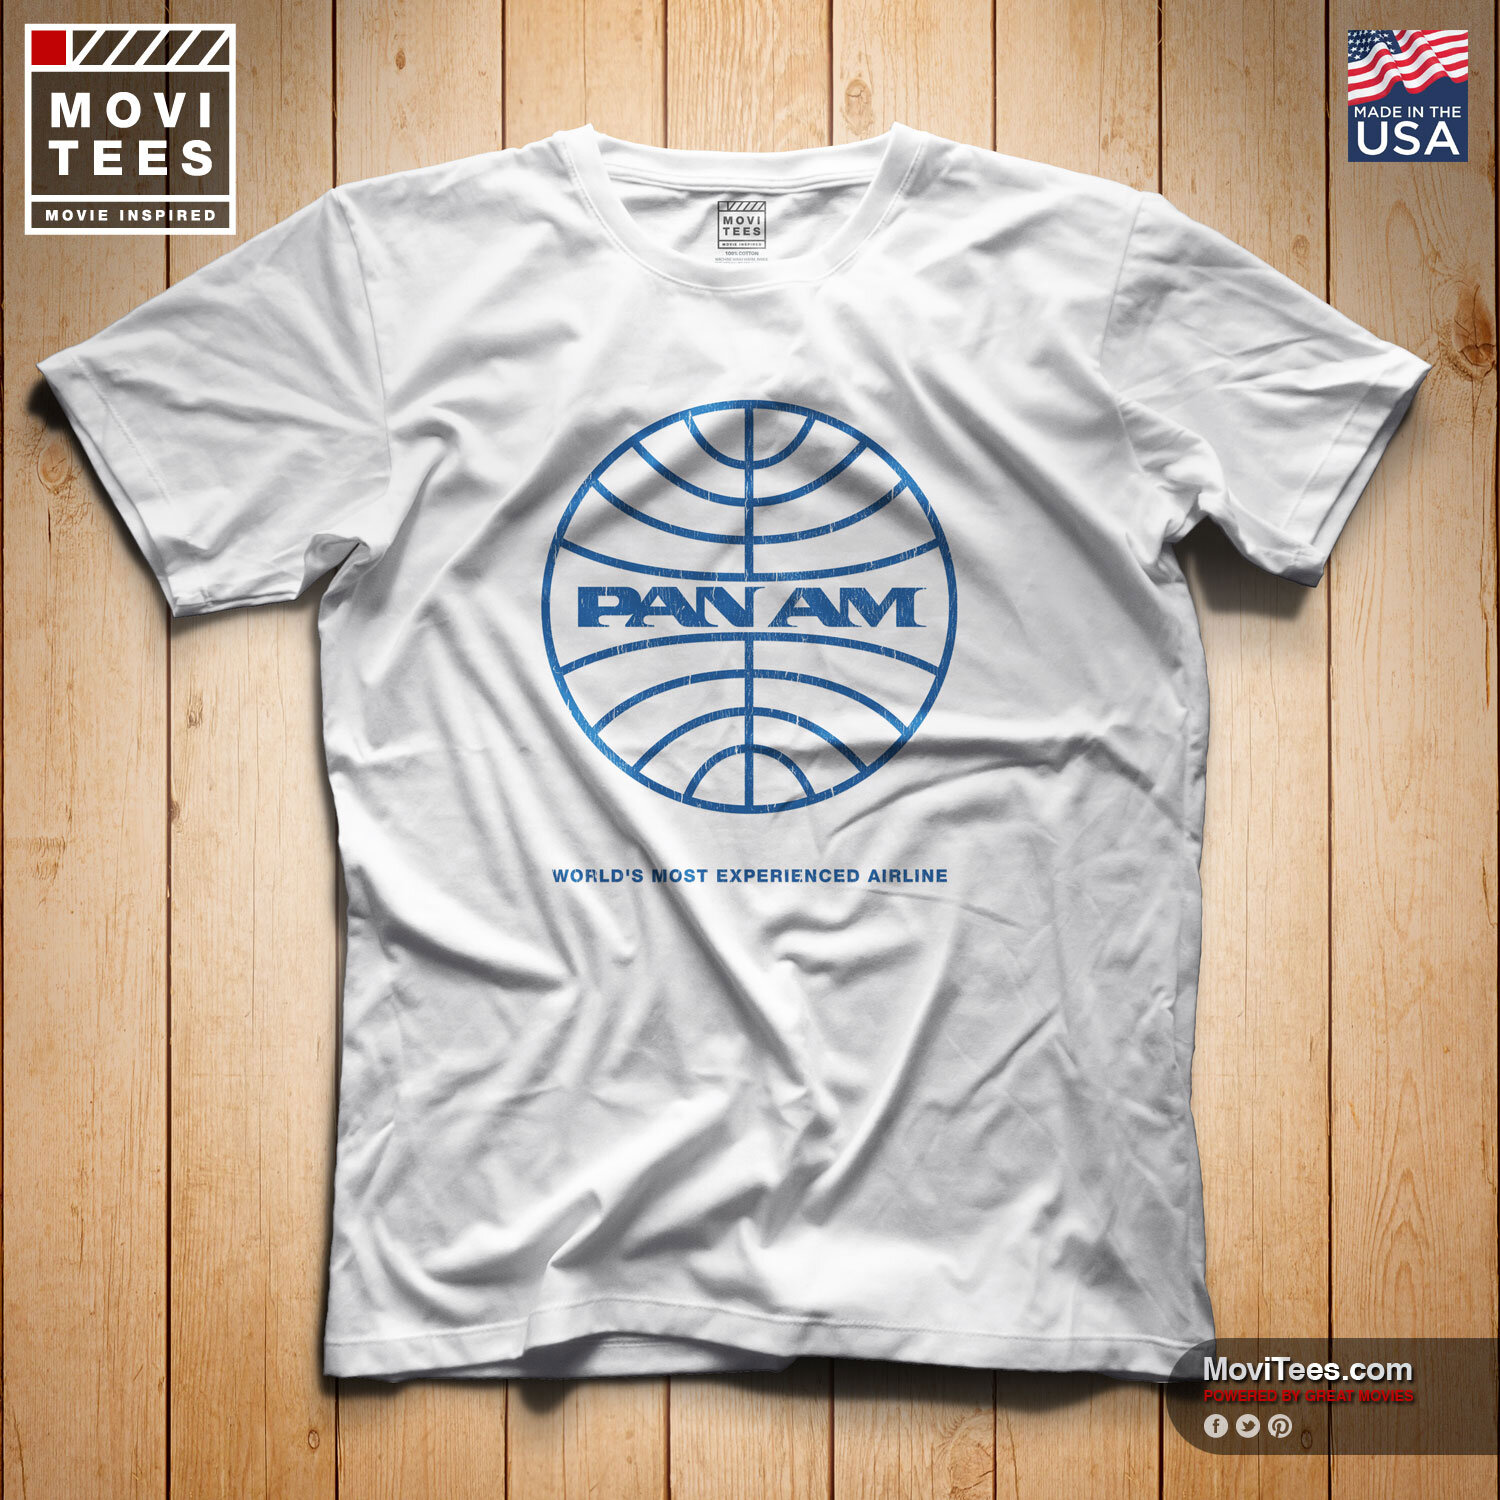 Pan Am Airlines T-Shirt